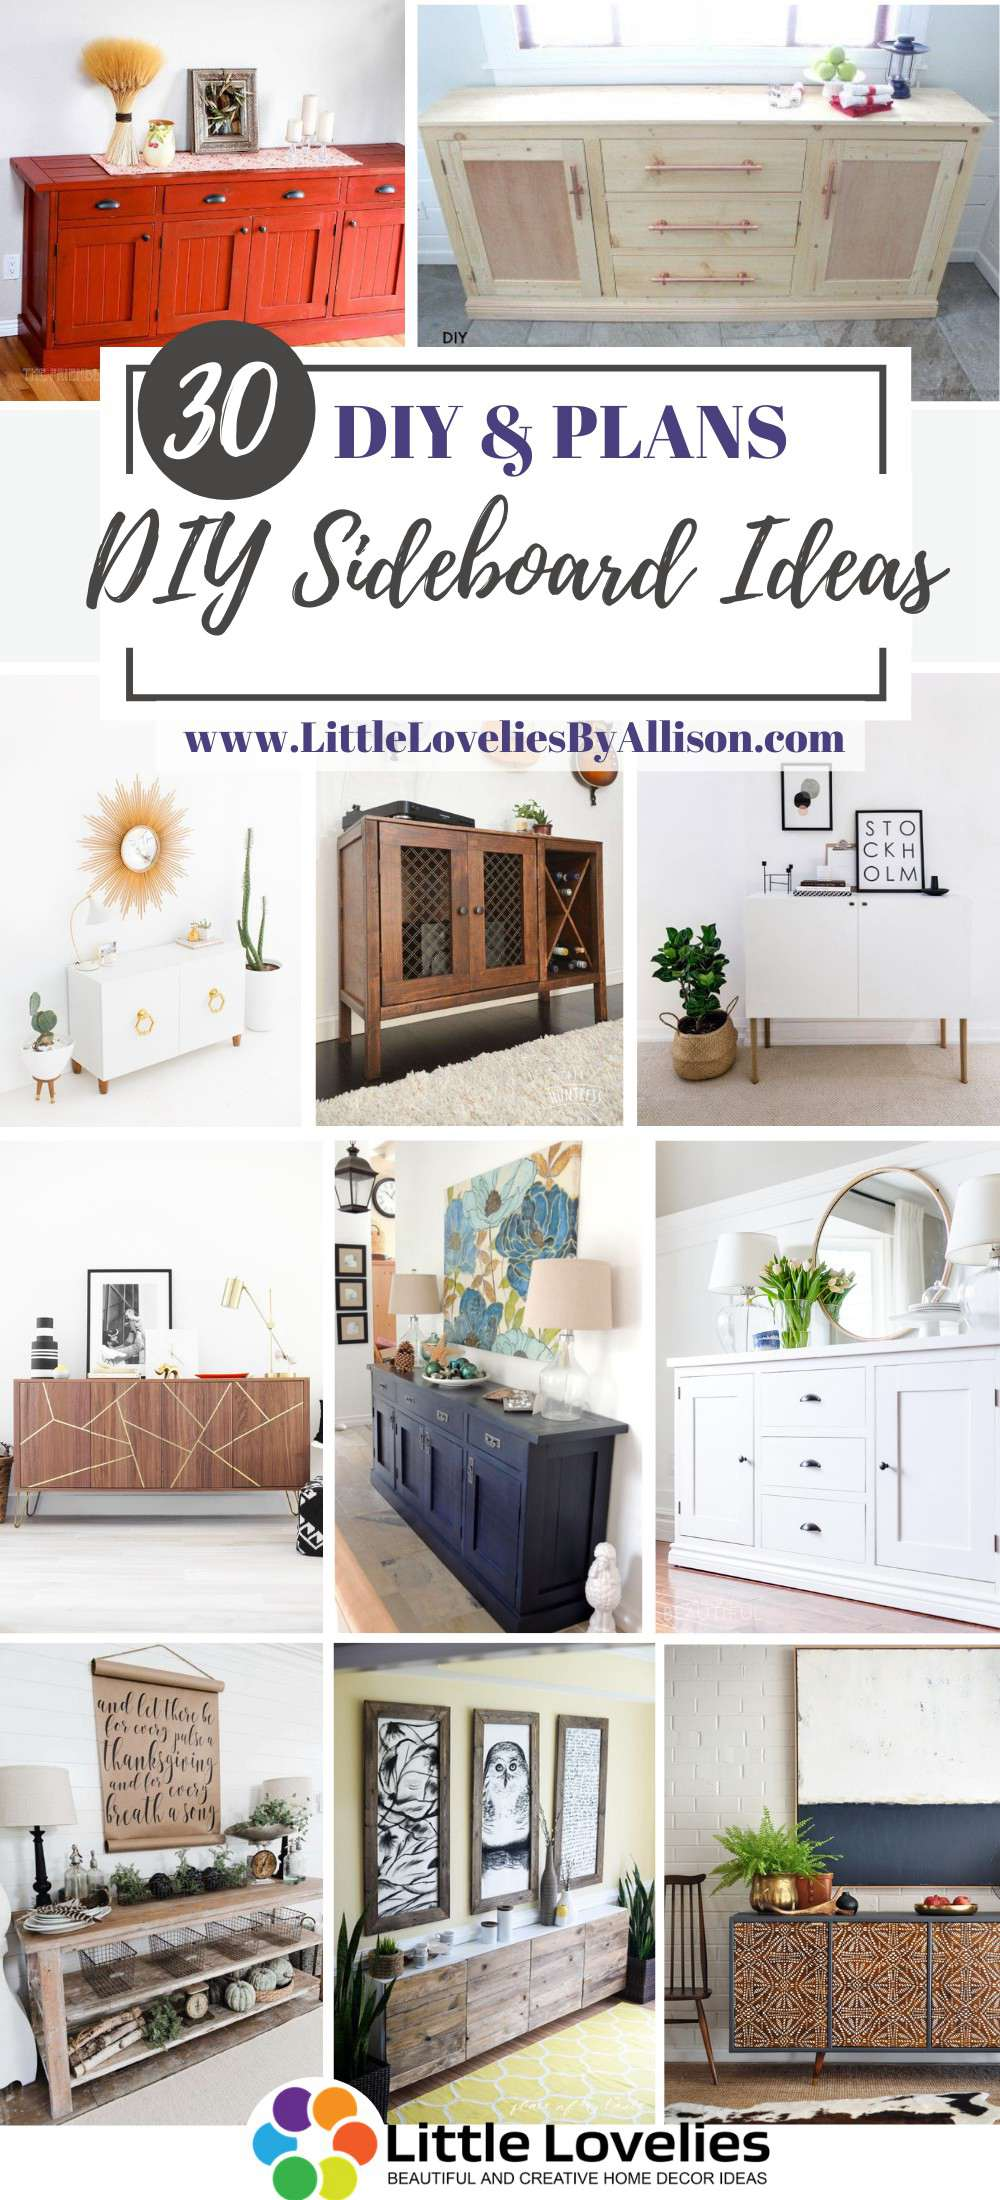 How-to-Build-a-DIY-Sideboard